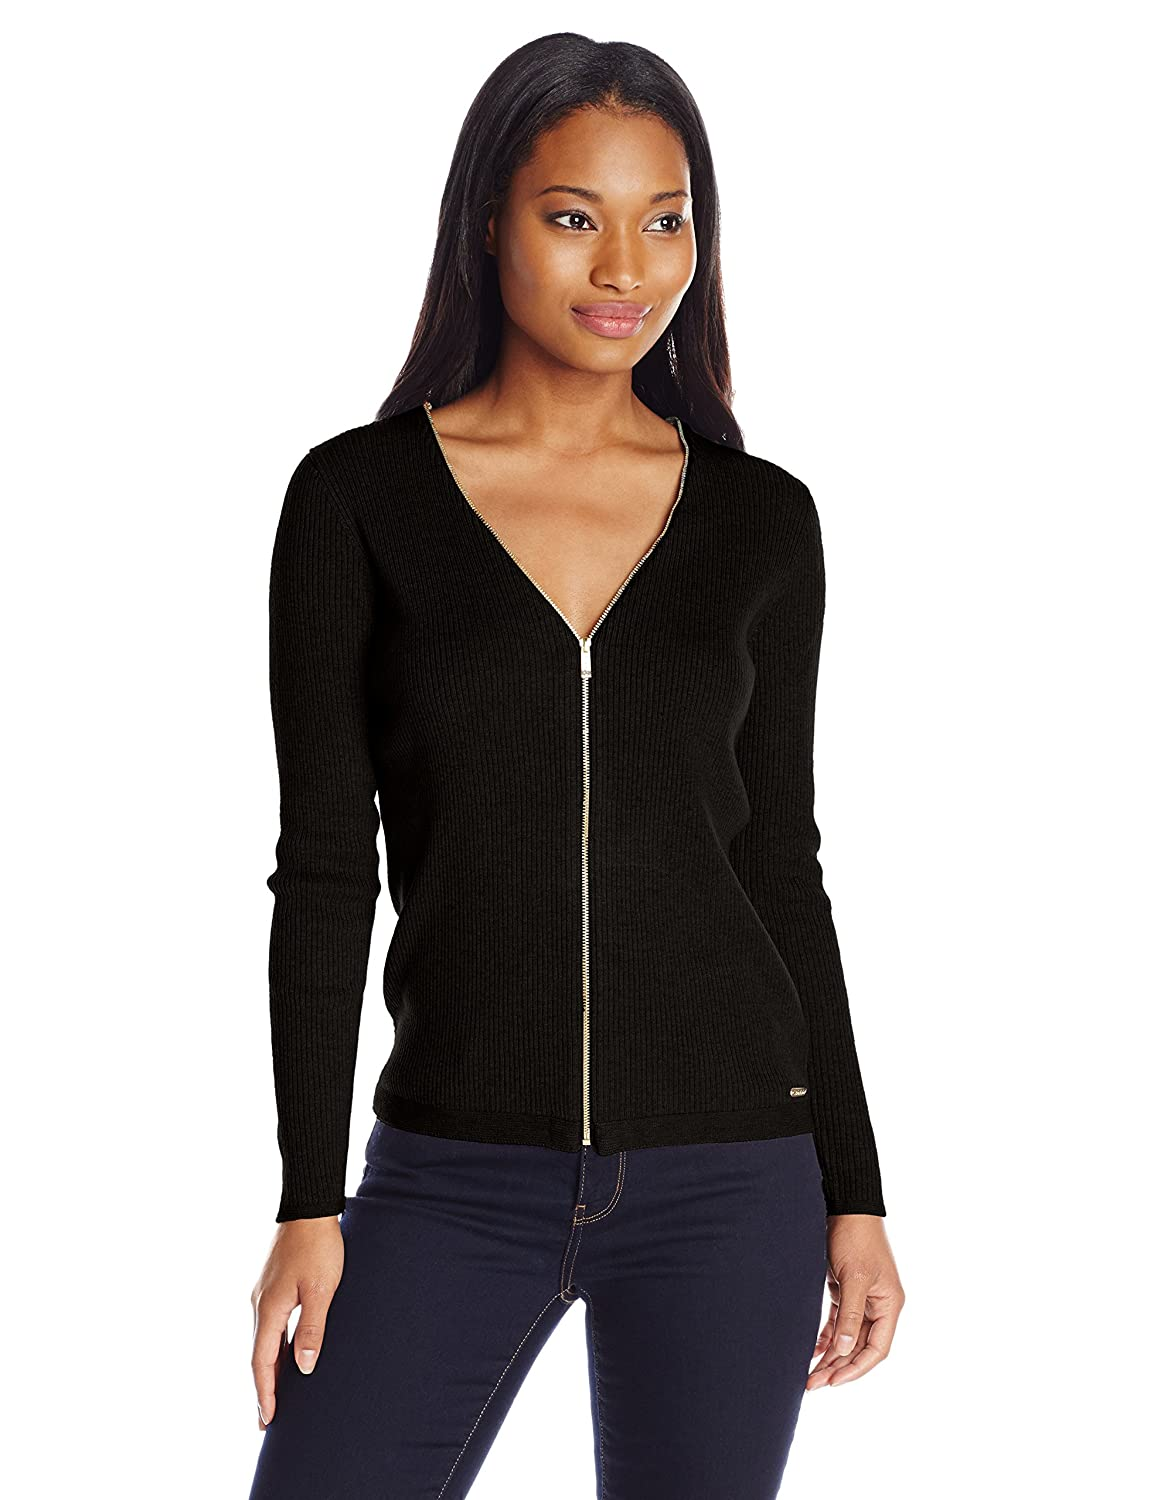 Ribbed Zipper Cardigan at Amazon Women's Clothing store: Cardigan ...